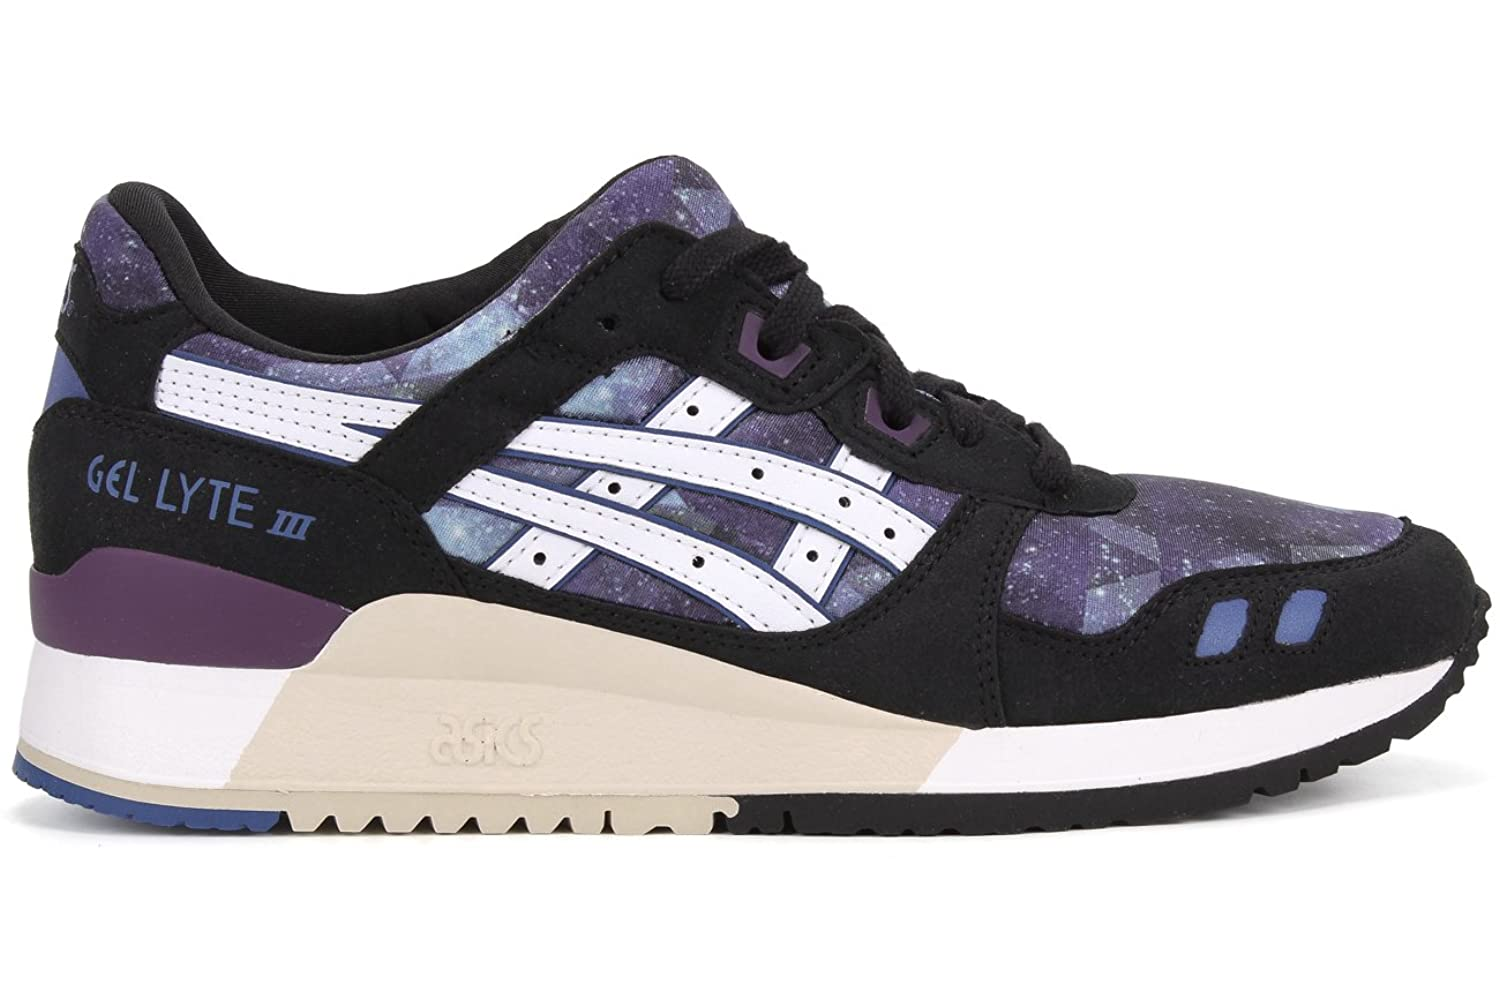 Asics Gel-Lyte III Men's Running/Fashion Sneakers B016CMW2AK 7.5 D(M) US